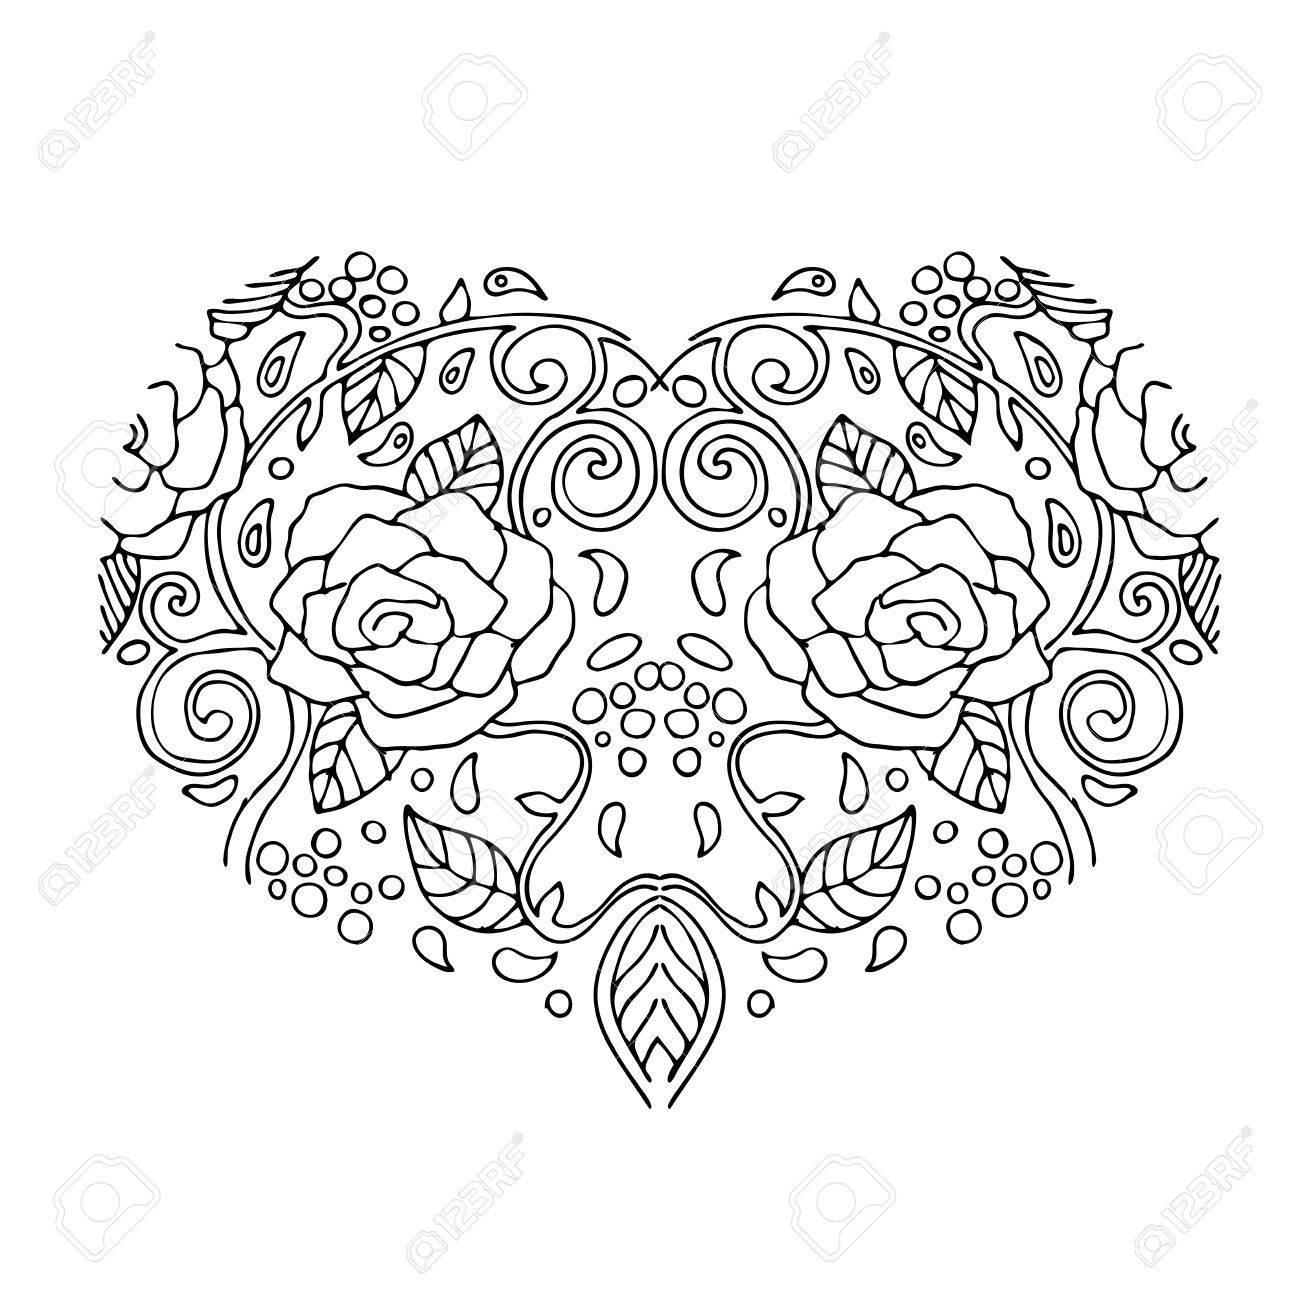 Decorative Love Heart With Flowers Valentines Day Card Coloring Book For Adult And Children